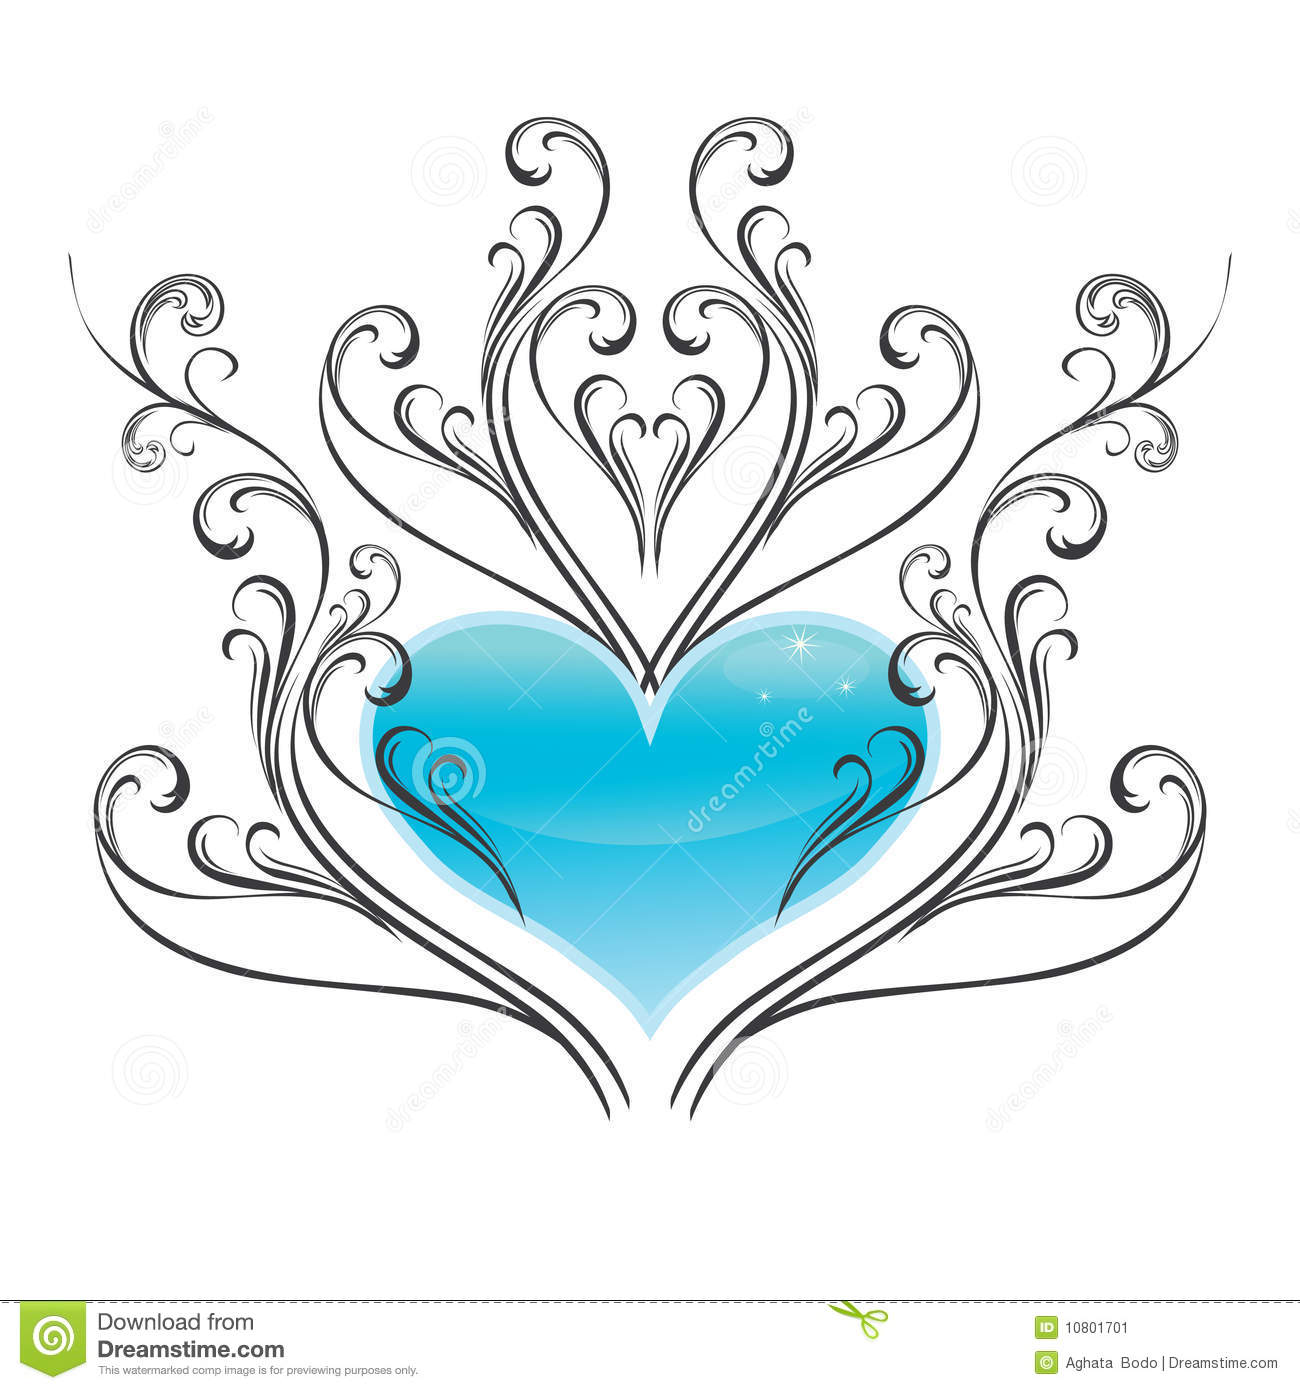 shiny ice heart with winter style ornament royalty free stock photo 10801701. Black Bedroom Furniture Sets. Home Design Ideas